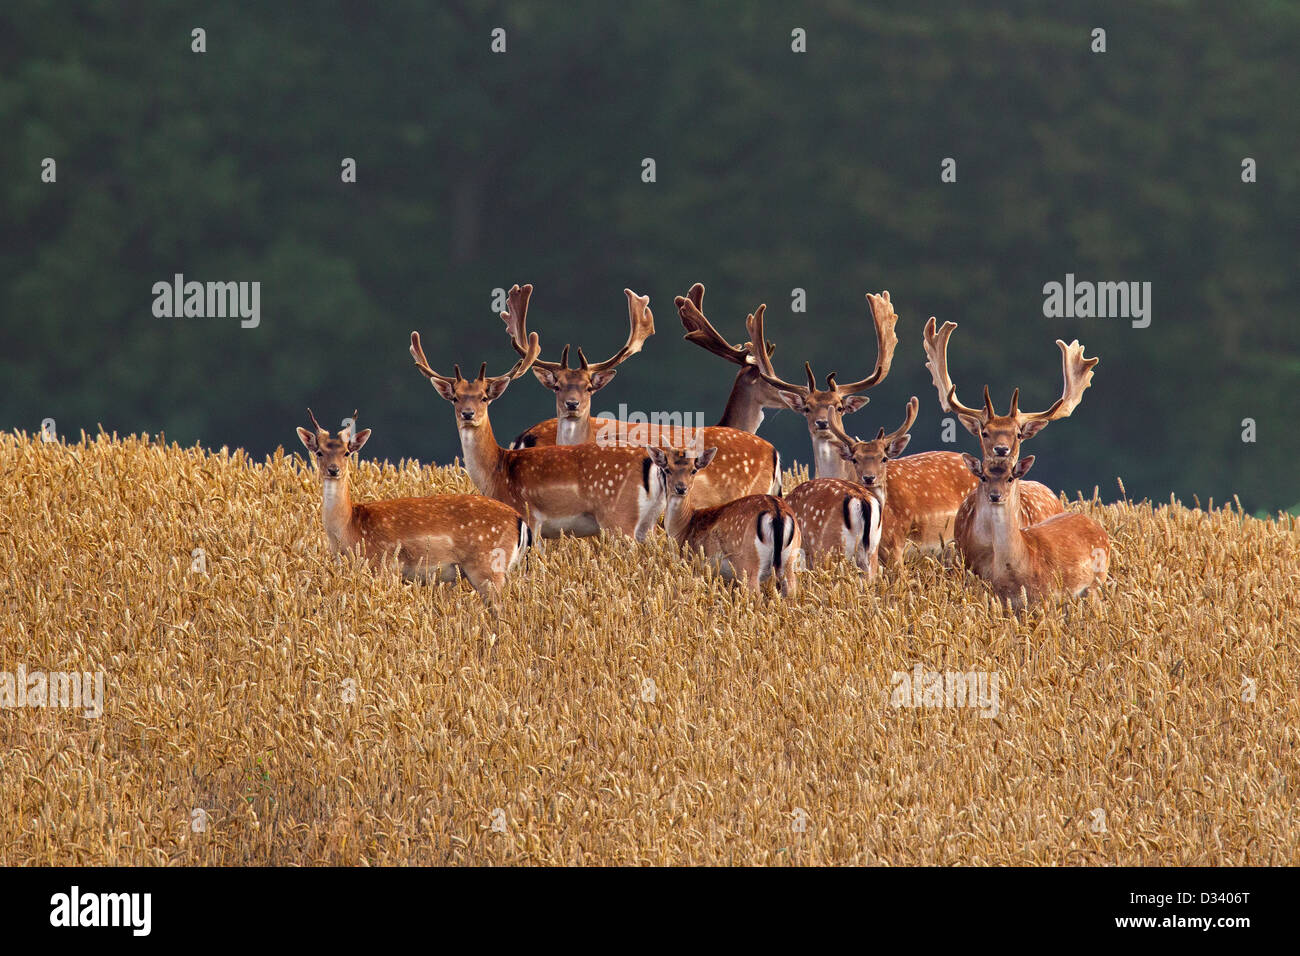 Herd of fallow deer (Dama dama) bucks with antlers covered in velvet in wheat field in summer - Stock Image